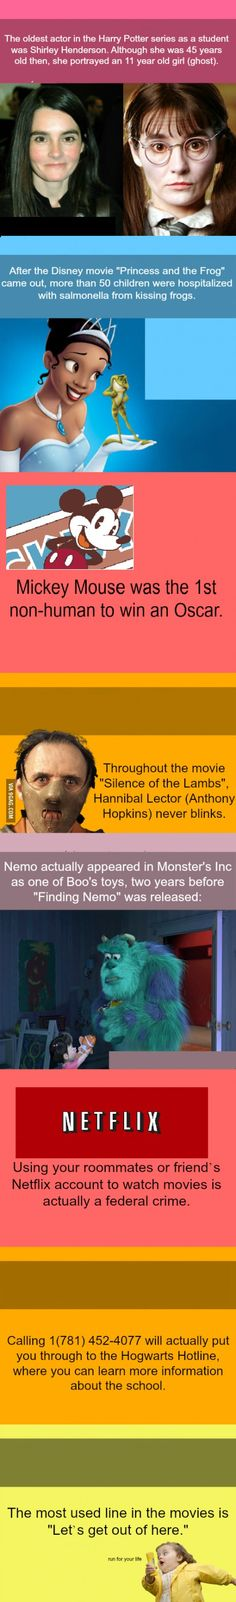 Some useless movie facts...